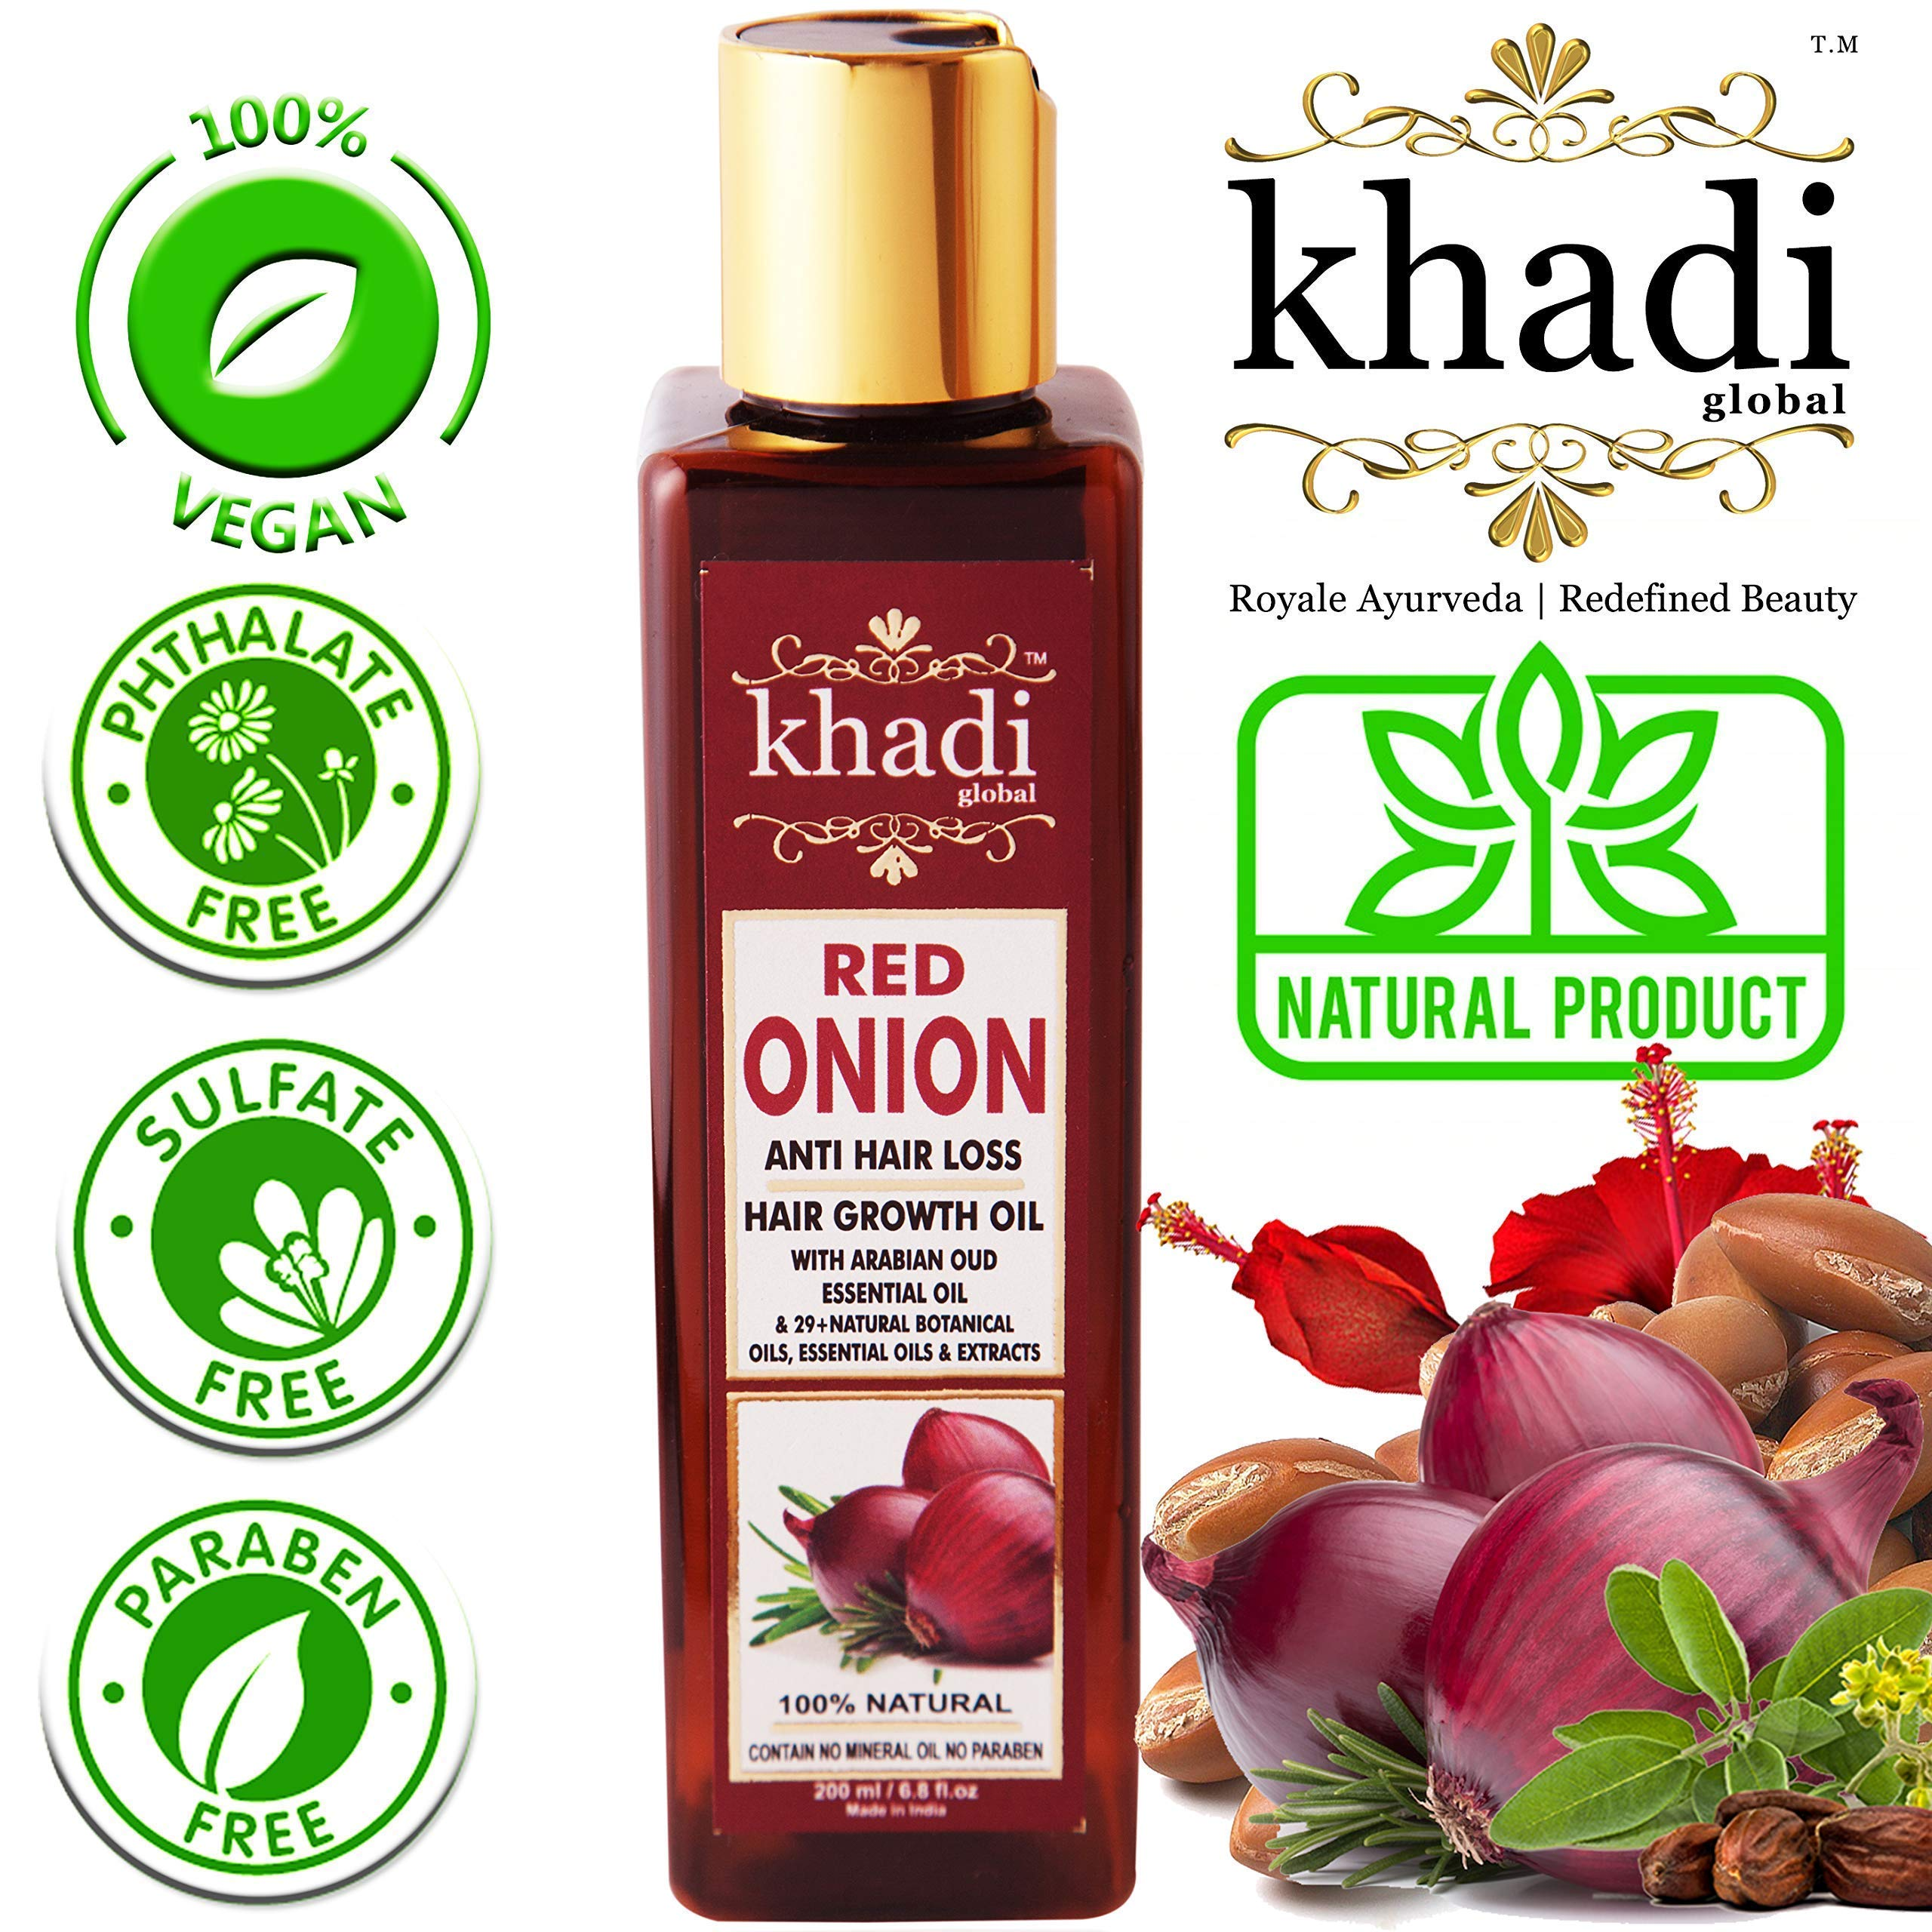 KHADI GLOBAL RED ONION HAIR GROWTH OIL WITH PURE ARGAN, JOJOBA, ROSEMARY, BLACK SEED OIL IN PUREST FORM VERY EFFECTIVELY CONTROL HAIR LOSS, PROMOTES HAIR GROWTH 100% NATURAL HAIR FOOD 200ml/6.76 fl.oz product image